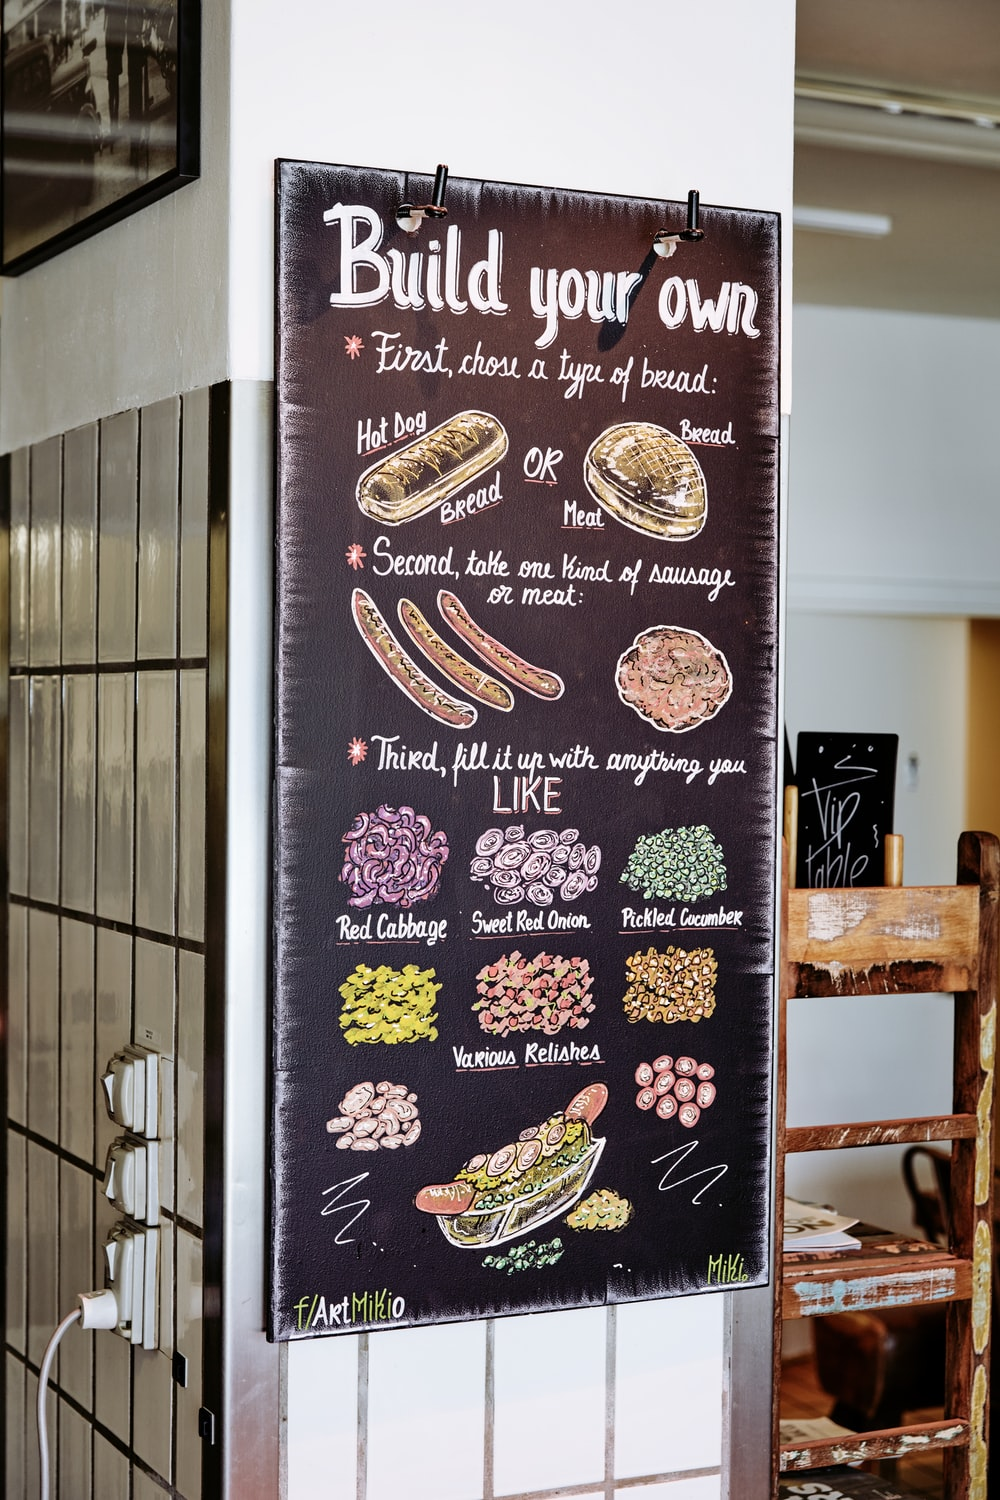 Build Your Own signage on wall